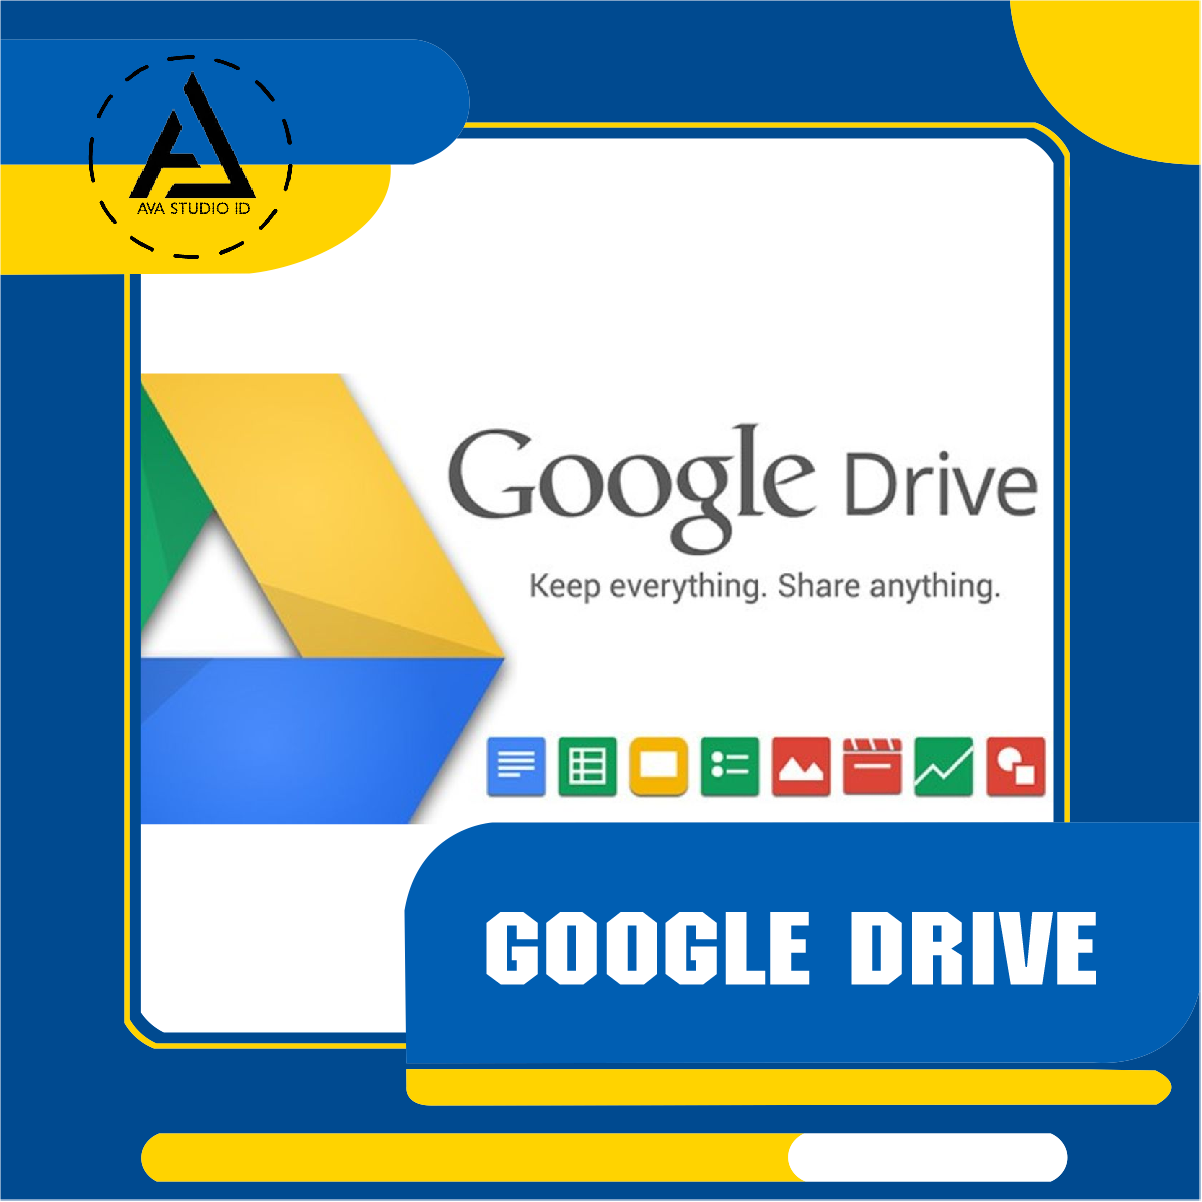 Google Drive is a file storage and synchronization service